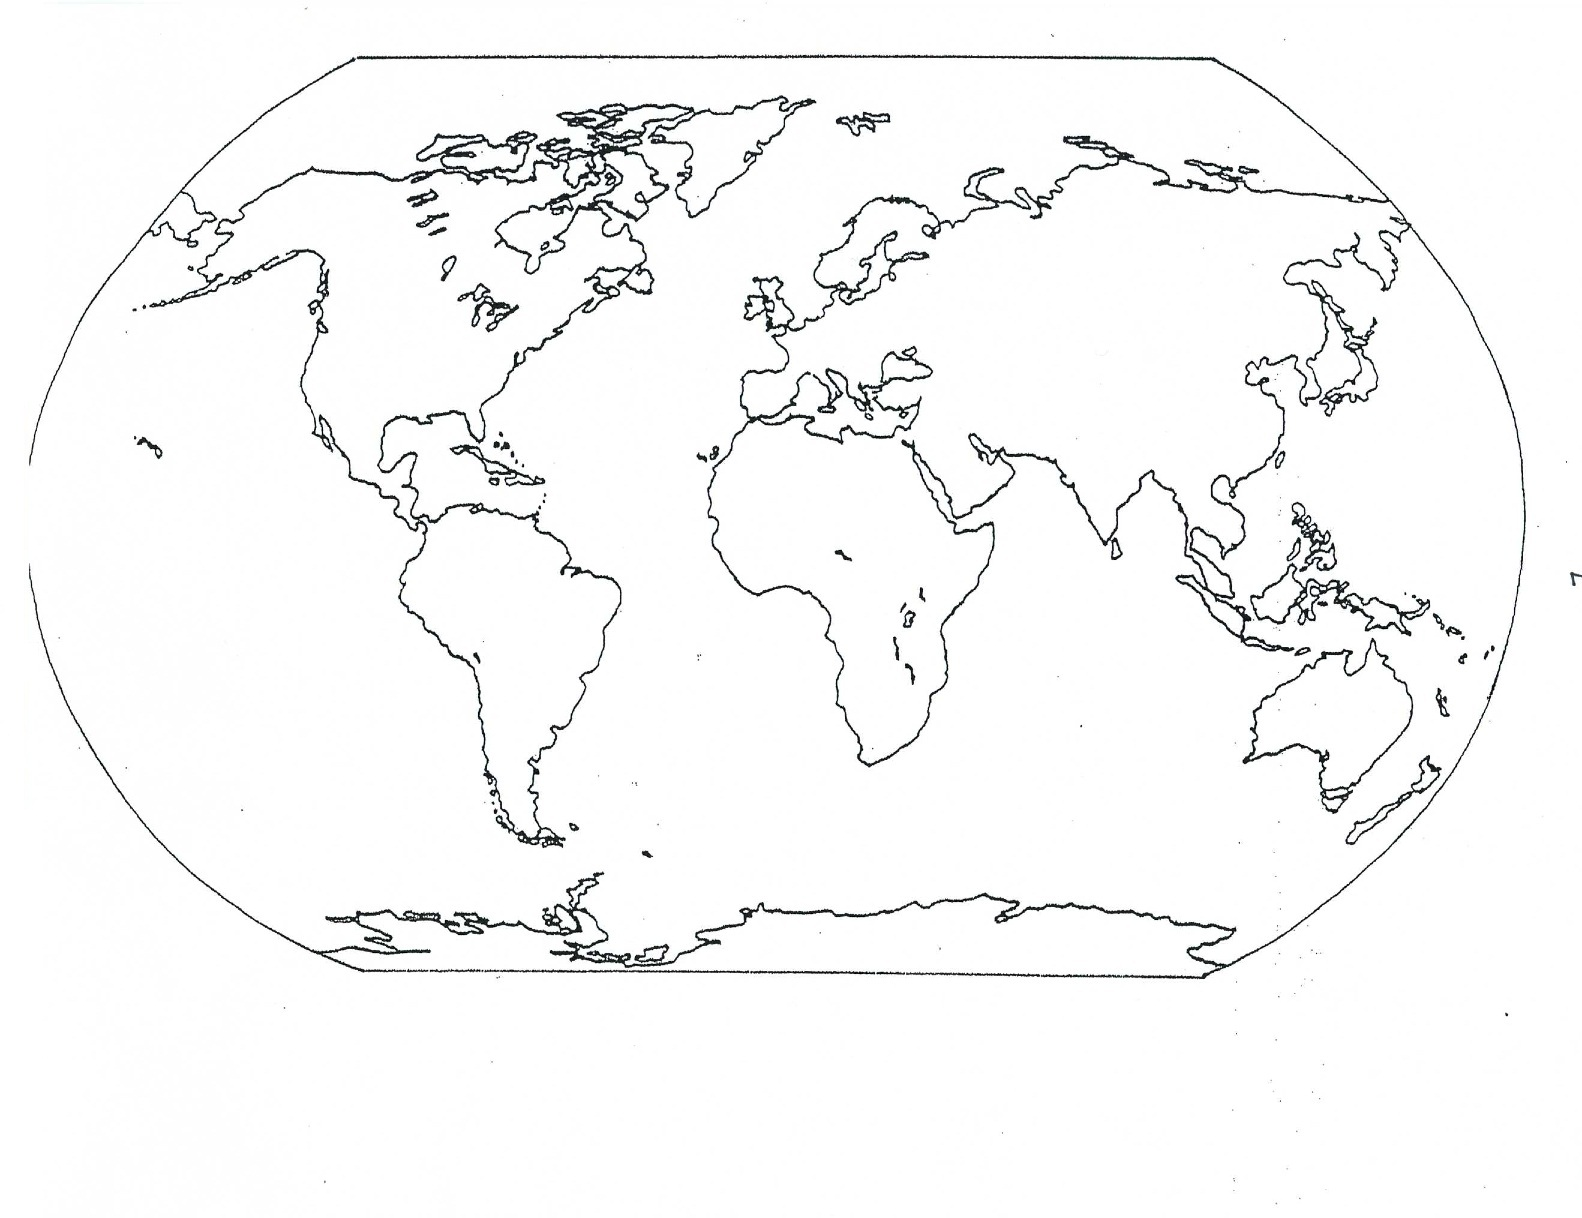 World Map Coloring Pages on Teaching Clip Art Free Amp Page 4